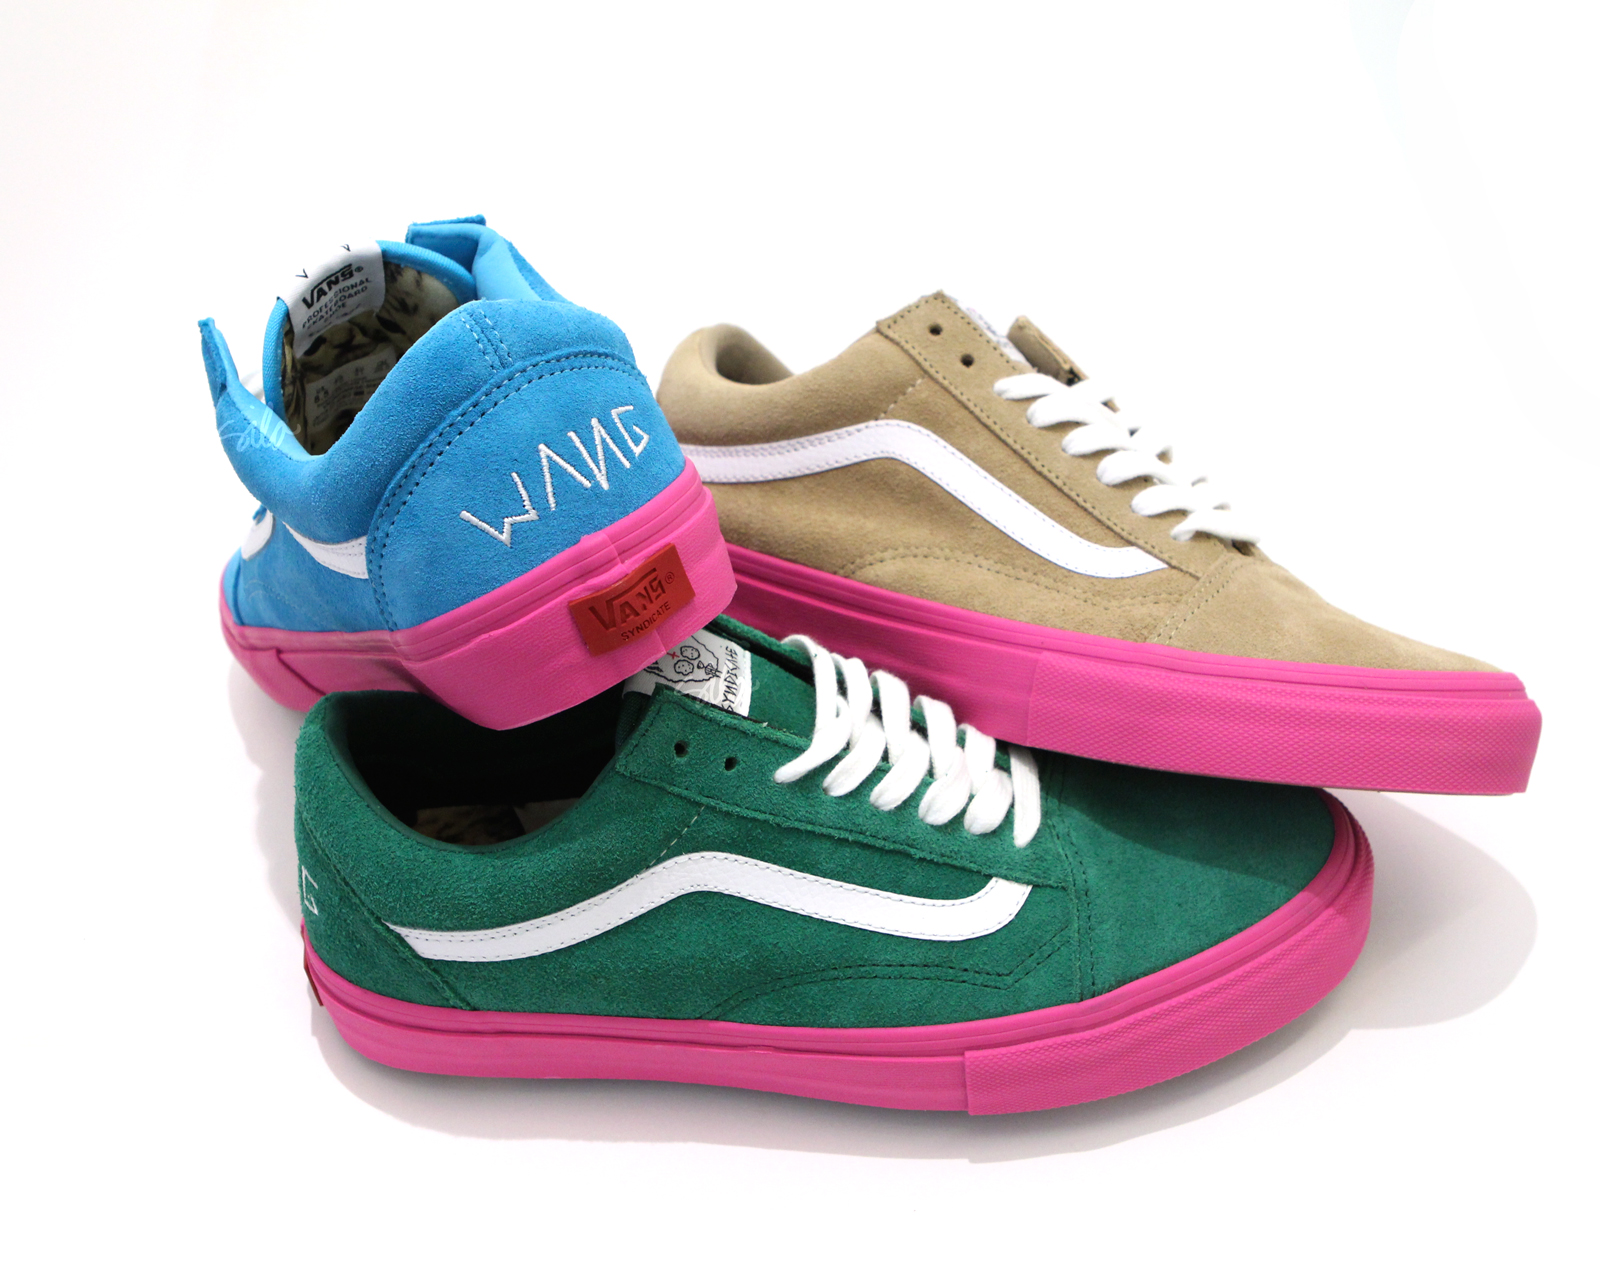 27f2a1c6719 Buy tyler the creator x vans syndicate old skool   OFF52% Discounts